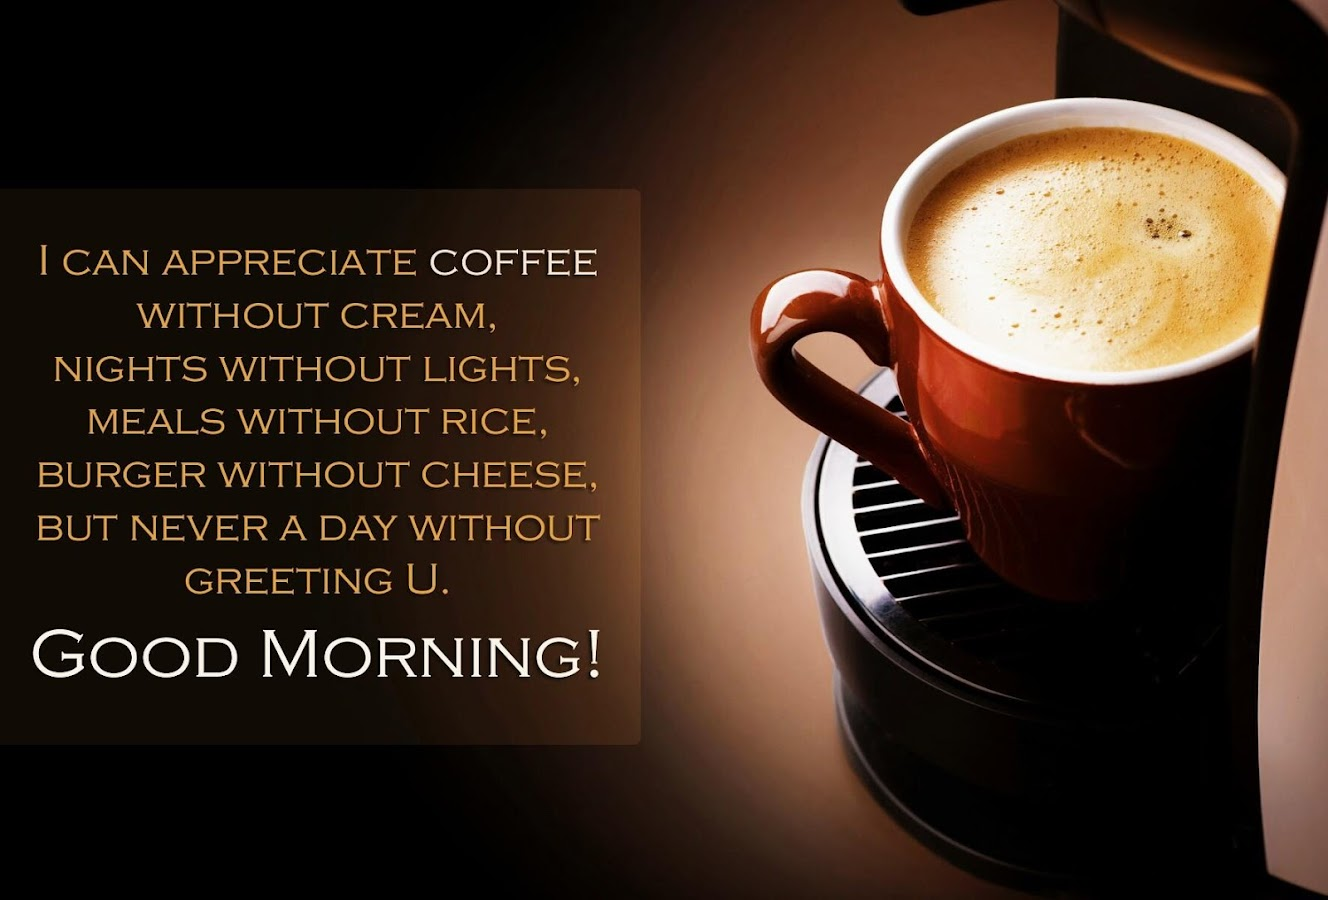 Good Morning Quotes And Images 711 Apk Download Android Social Apps